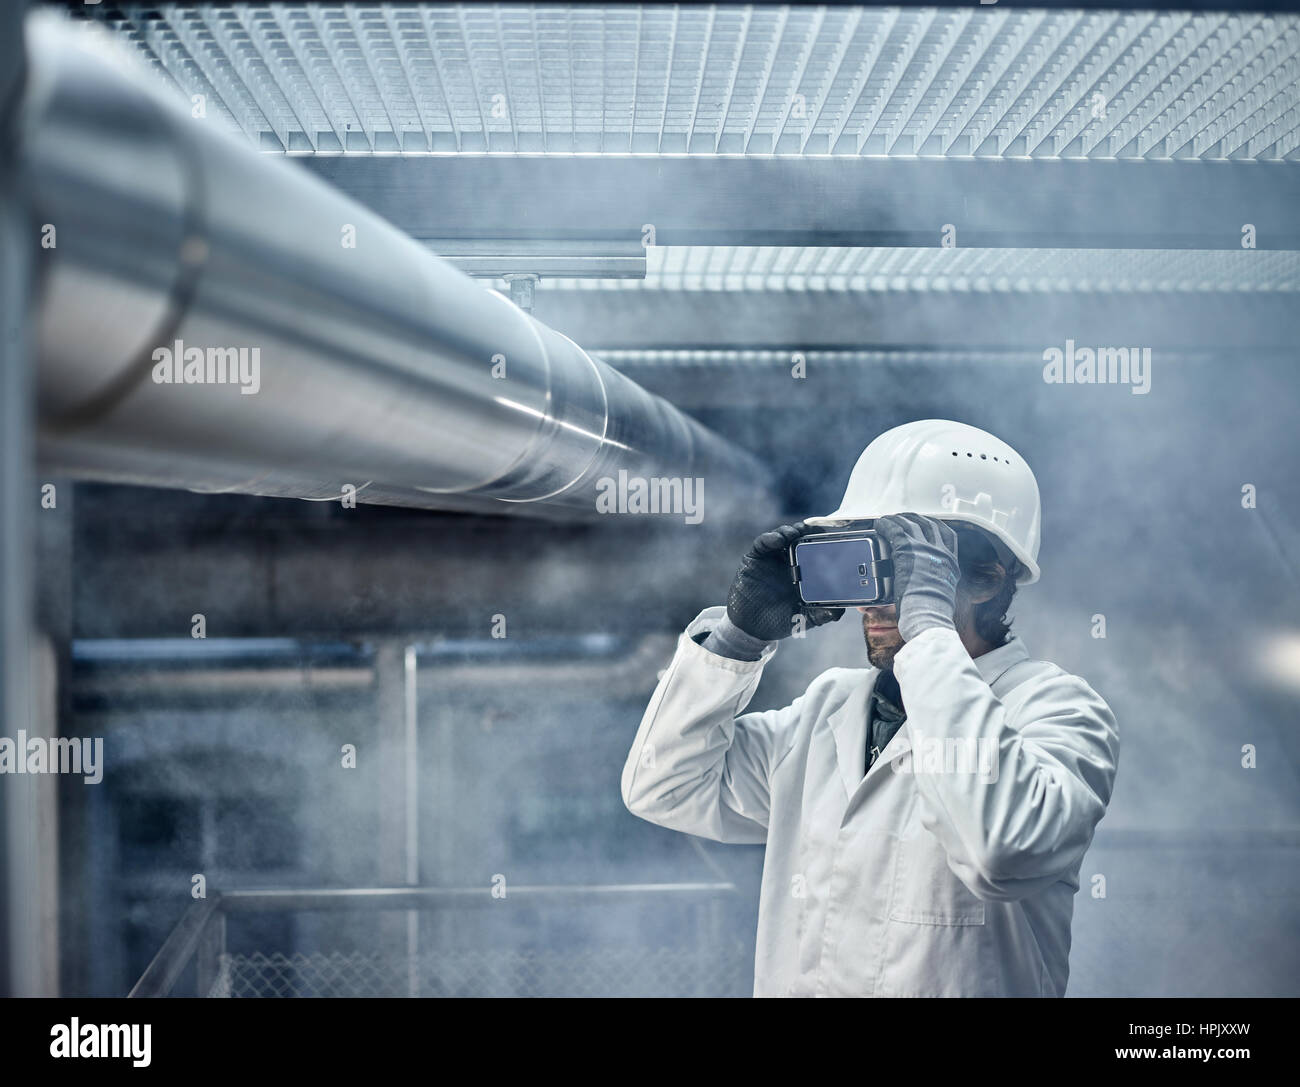 Man with VR goggles, white helmet and lab coat standing in front of industrial plant, Austria - Stock Image